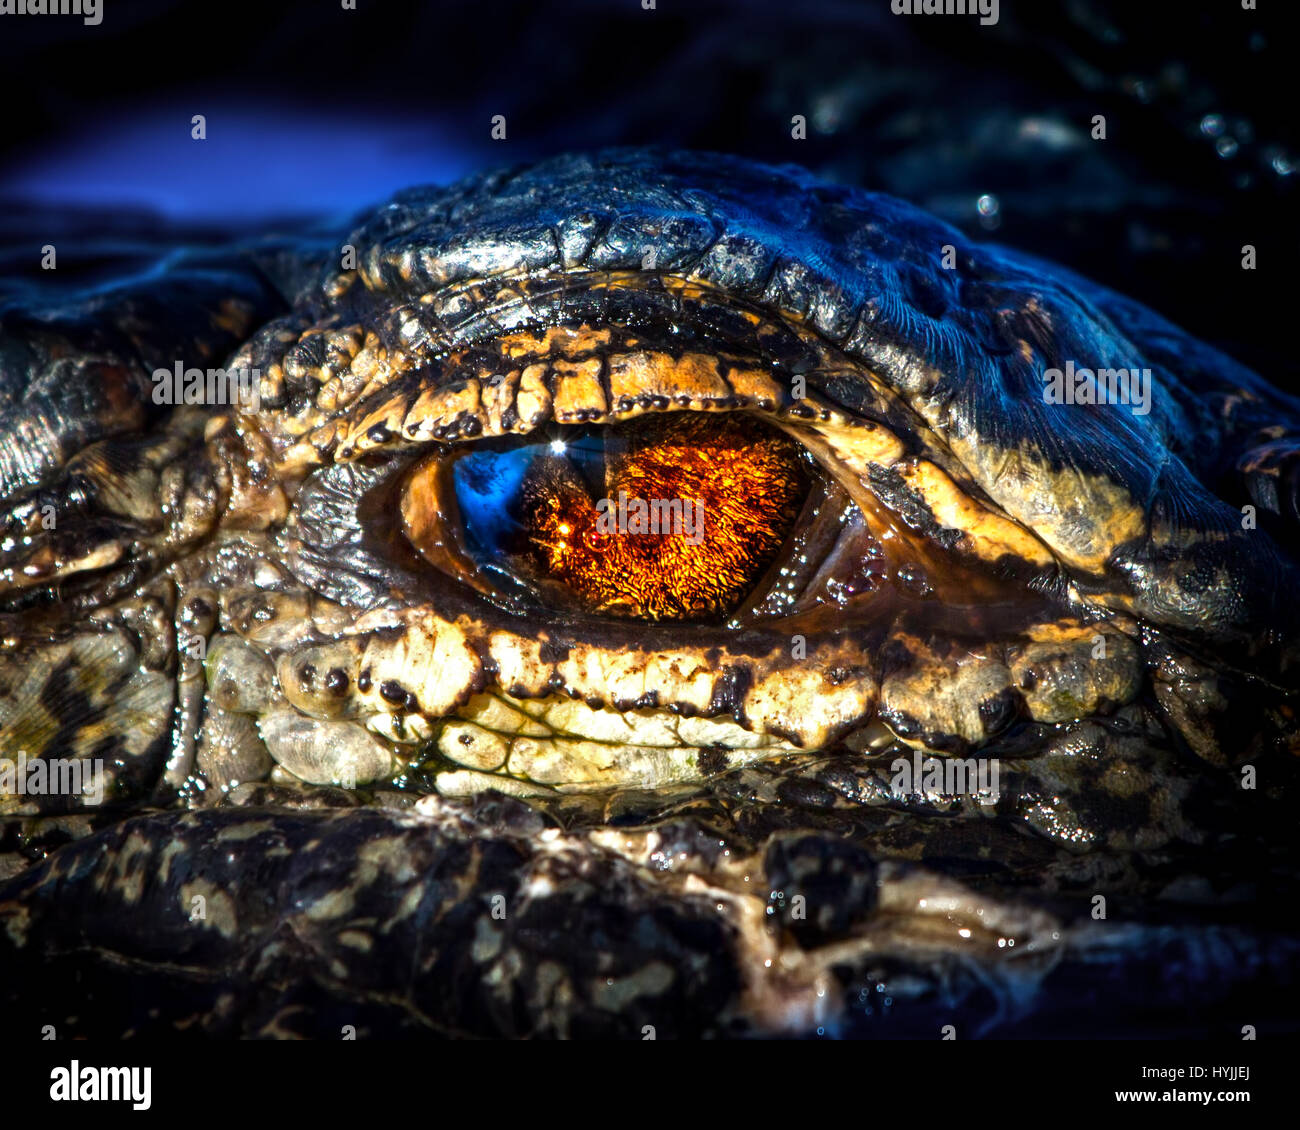 A closeup of an American Alligator in the Florida Everglades with reflections of the sun and sky in his eye. - Stock Image